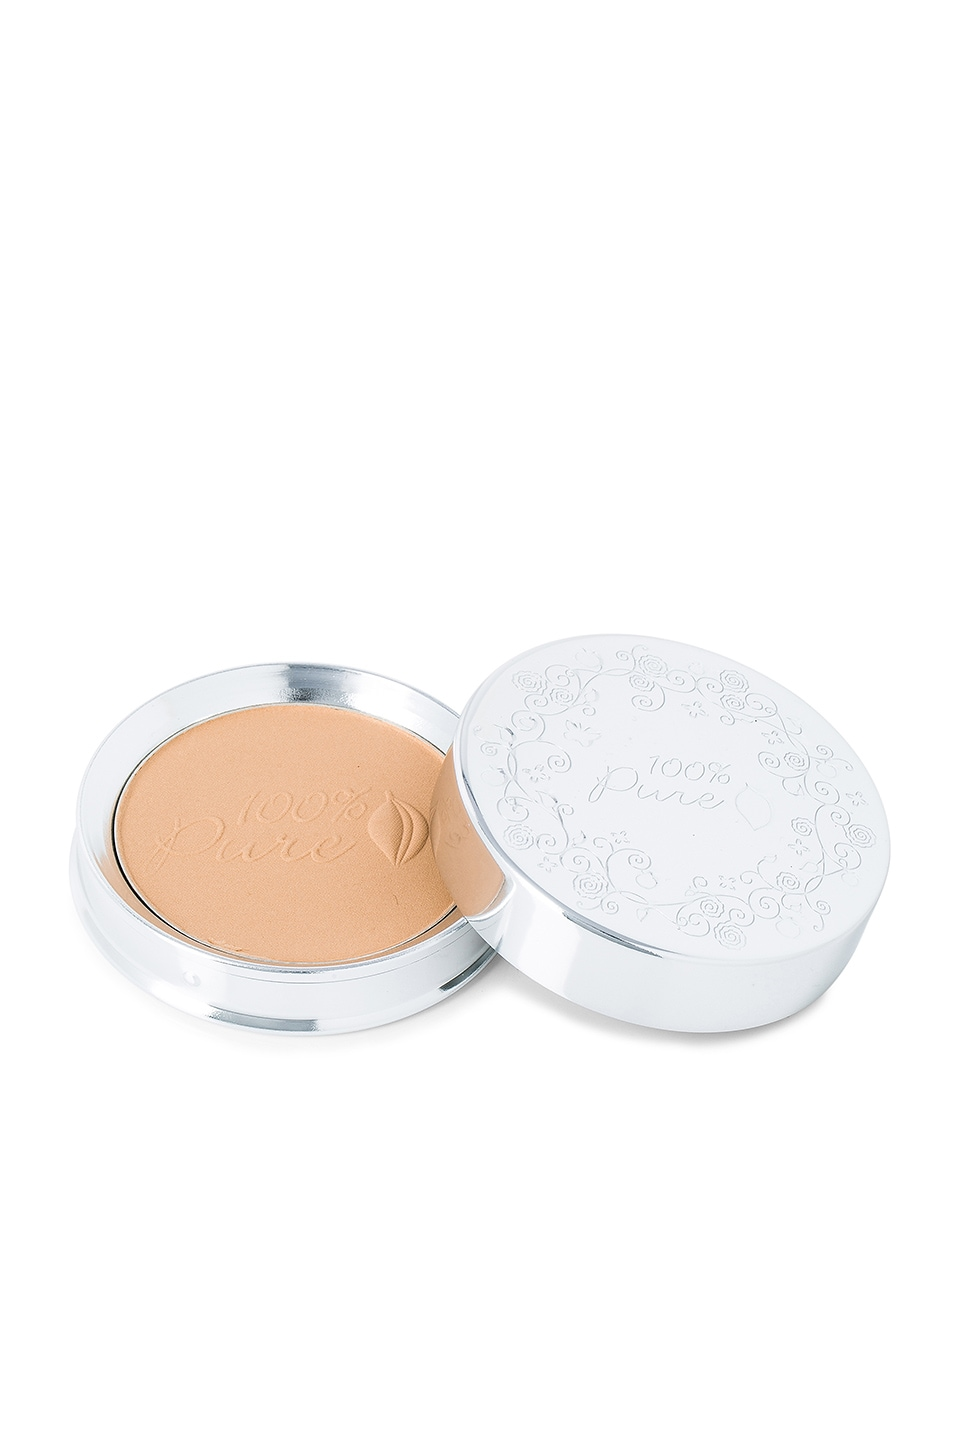 100% Pure Healthy Face Powder Foundation w/ Sun Protection in White Peach